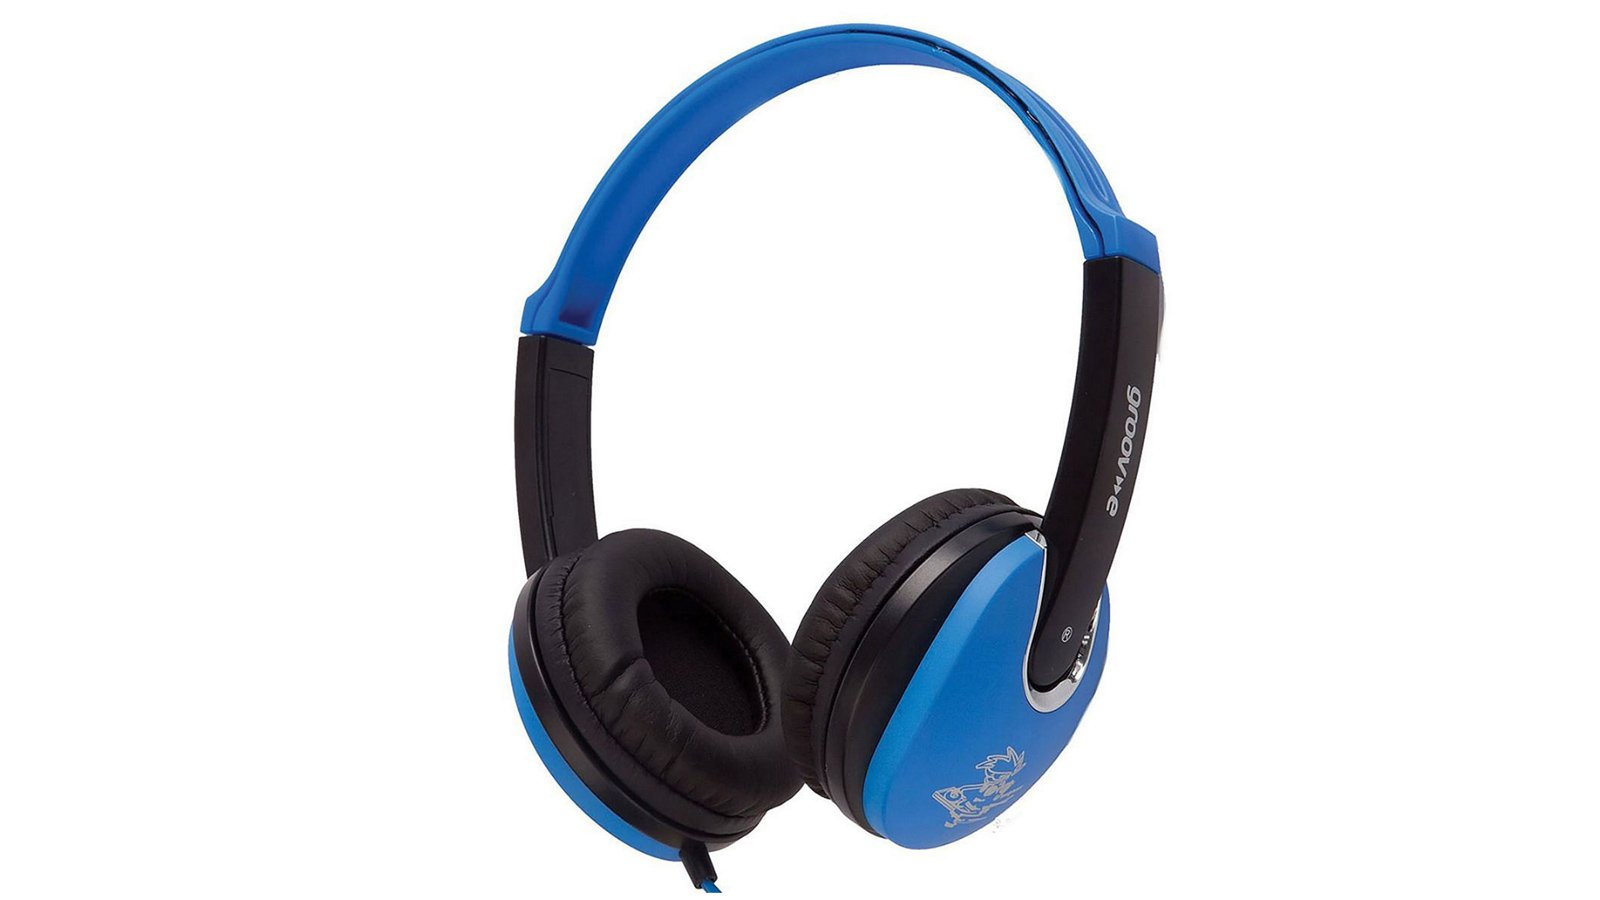 2fc1ebd74622f8 If you're looking for cheap headphones, you might be looking for something  that you can give to your kids. Unlike most, these are specifically  designed for ...